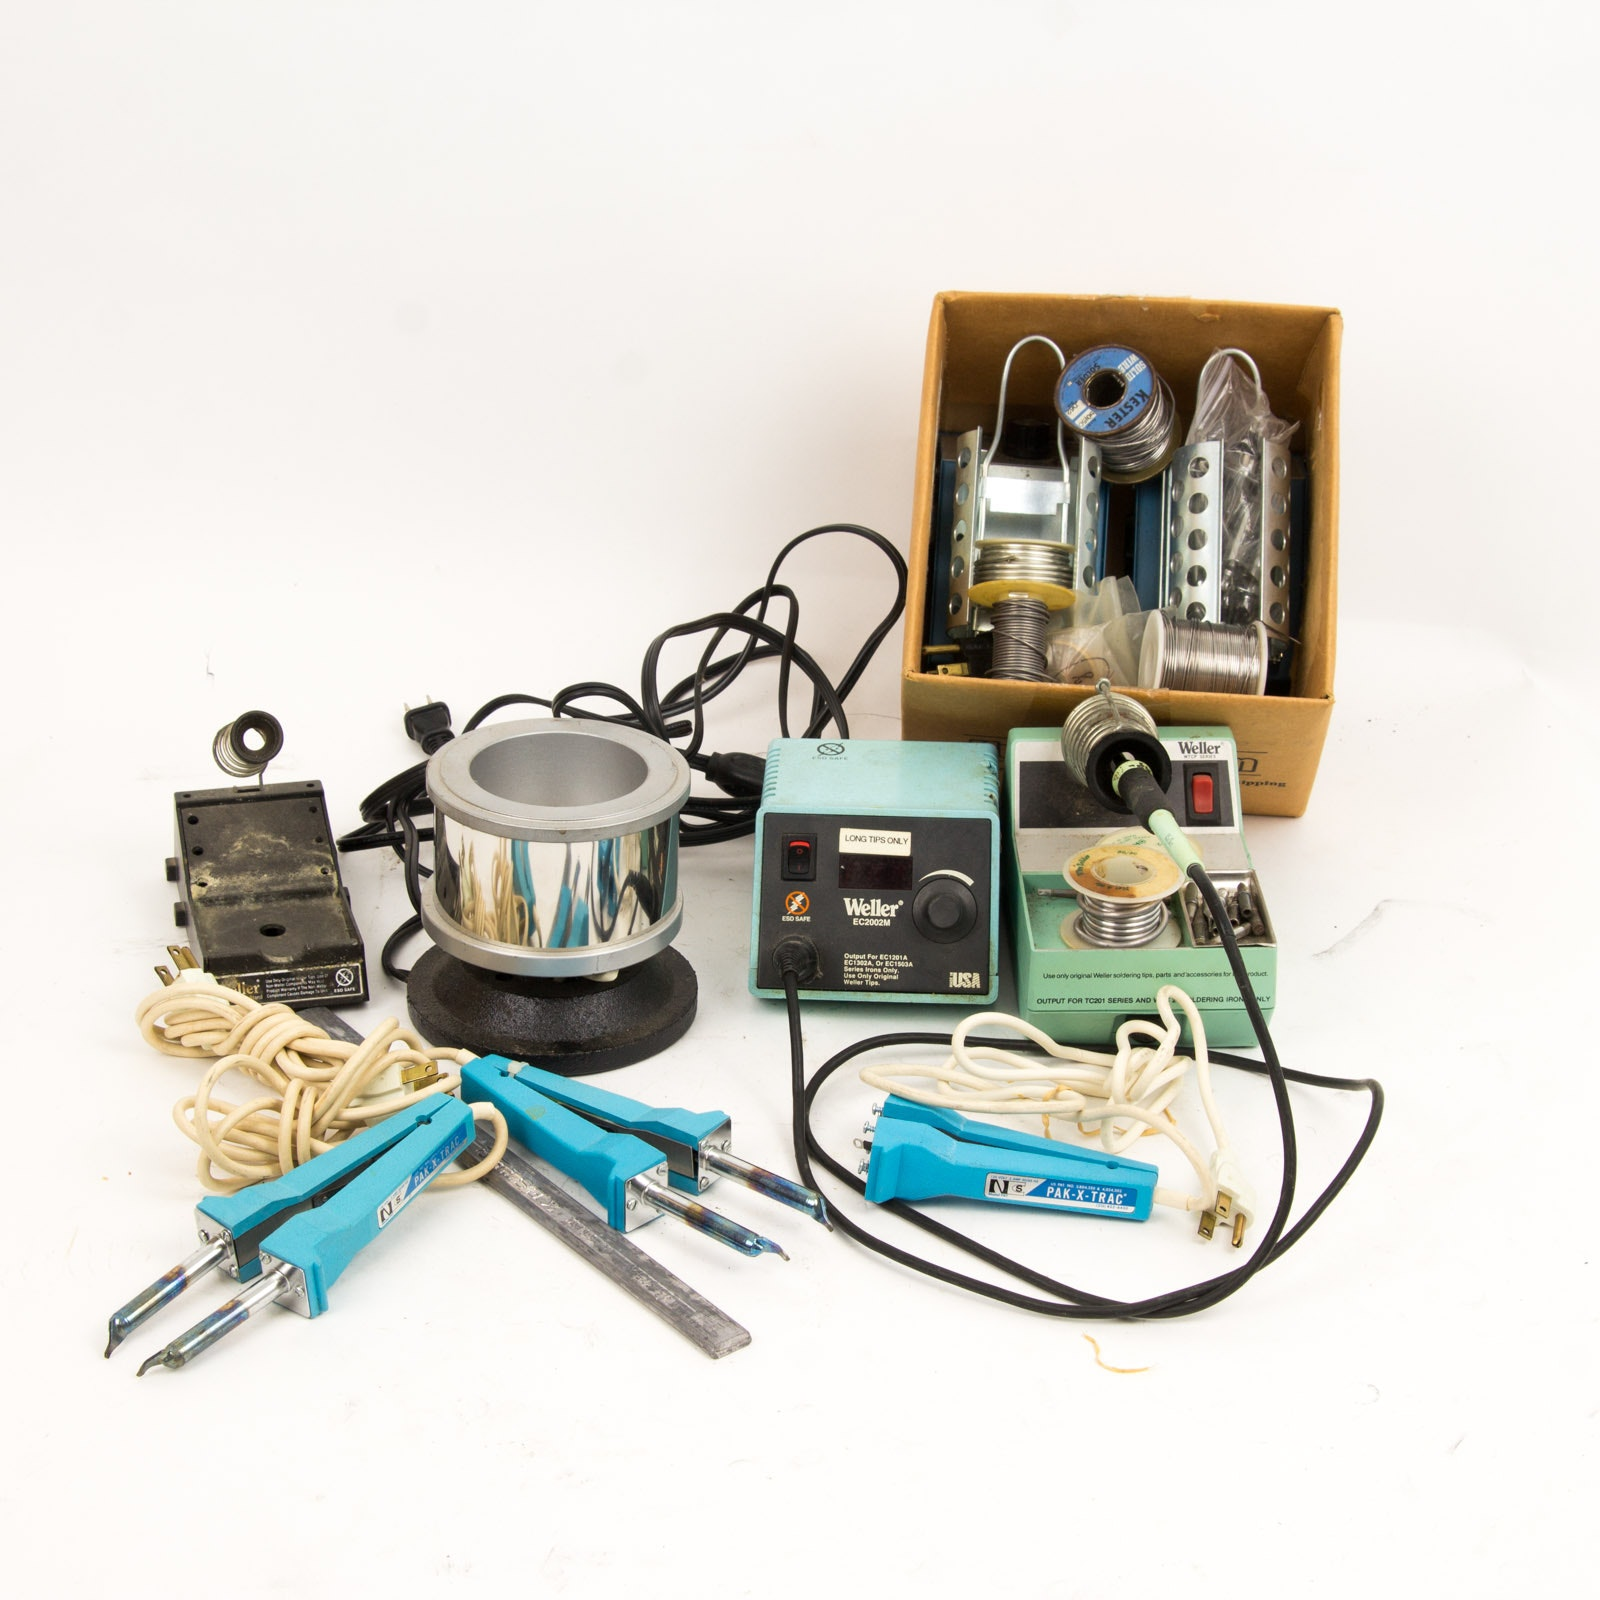 Weller Soldering Stations and Soldering Accessories